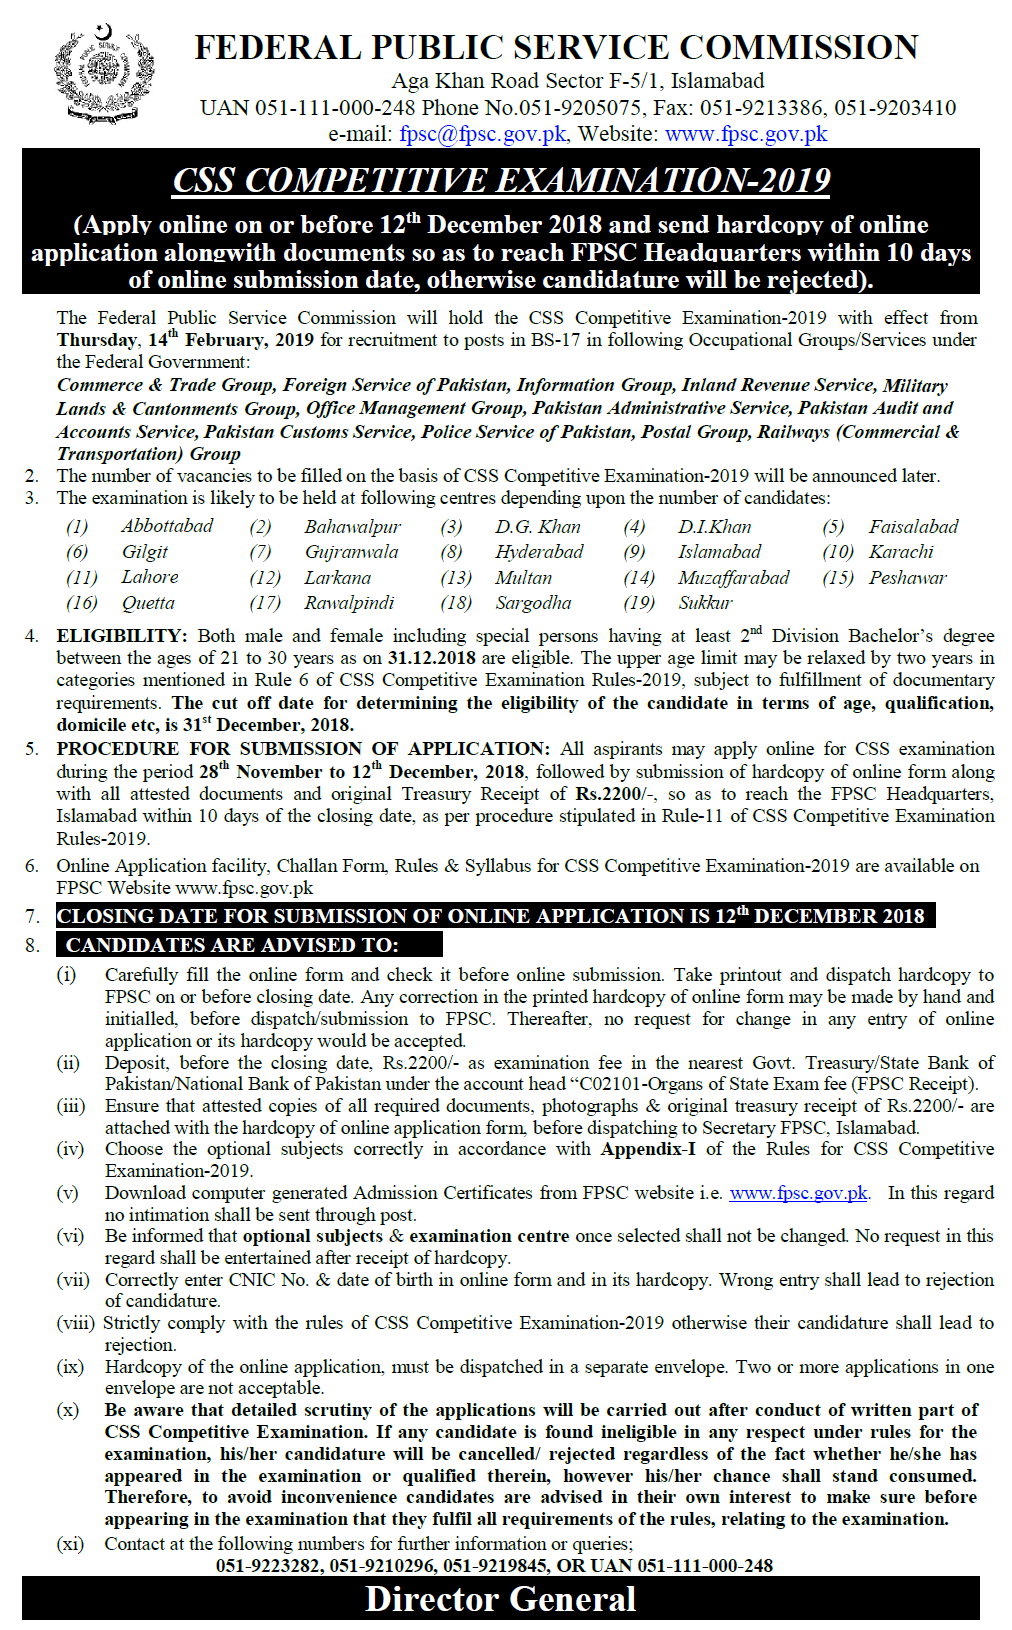 FPSC CSS Exam 2019 In Pakistan Advertisement